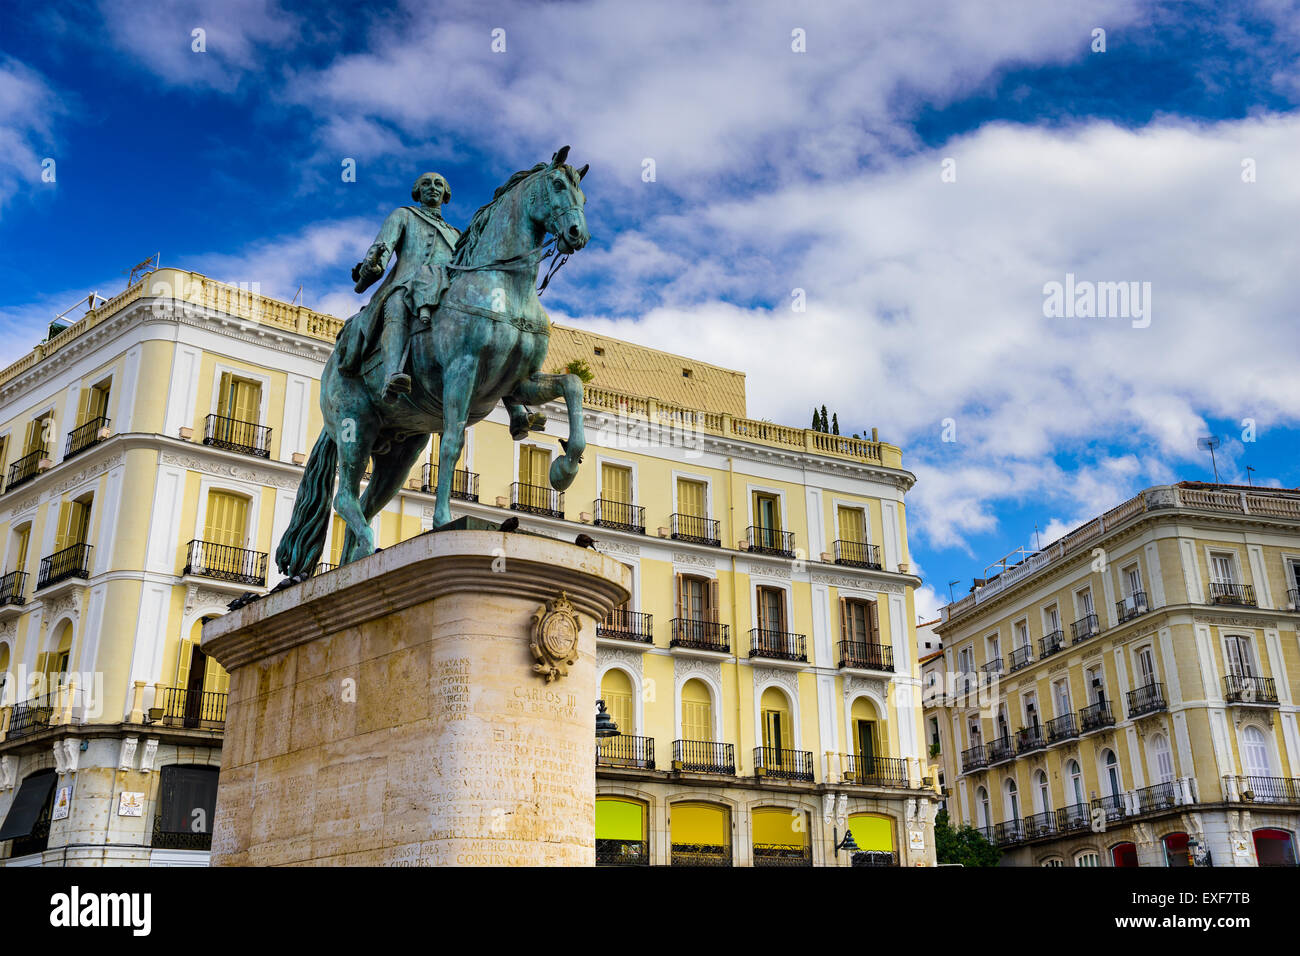 Madrid, Spain at the King Charles III equestrian statue in Puerta del Sol. - Stock Image